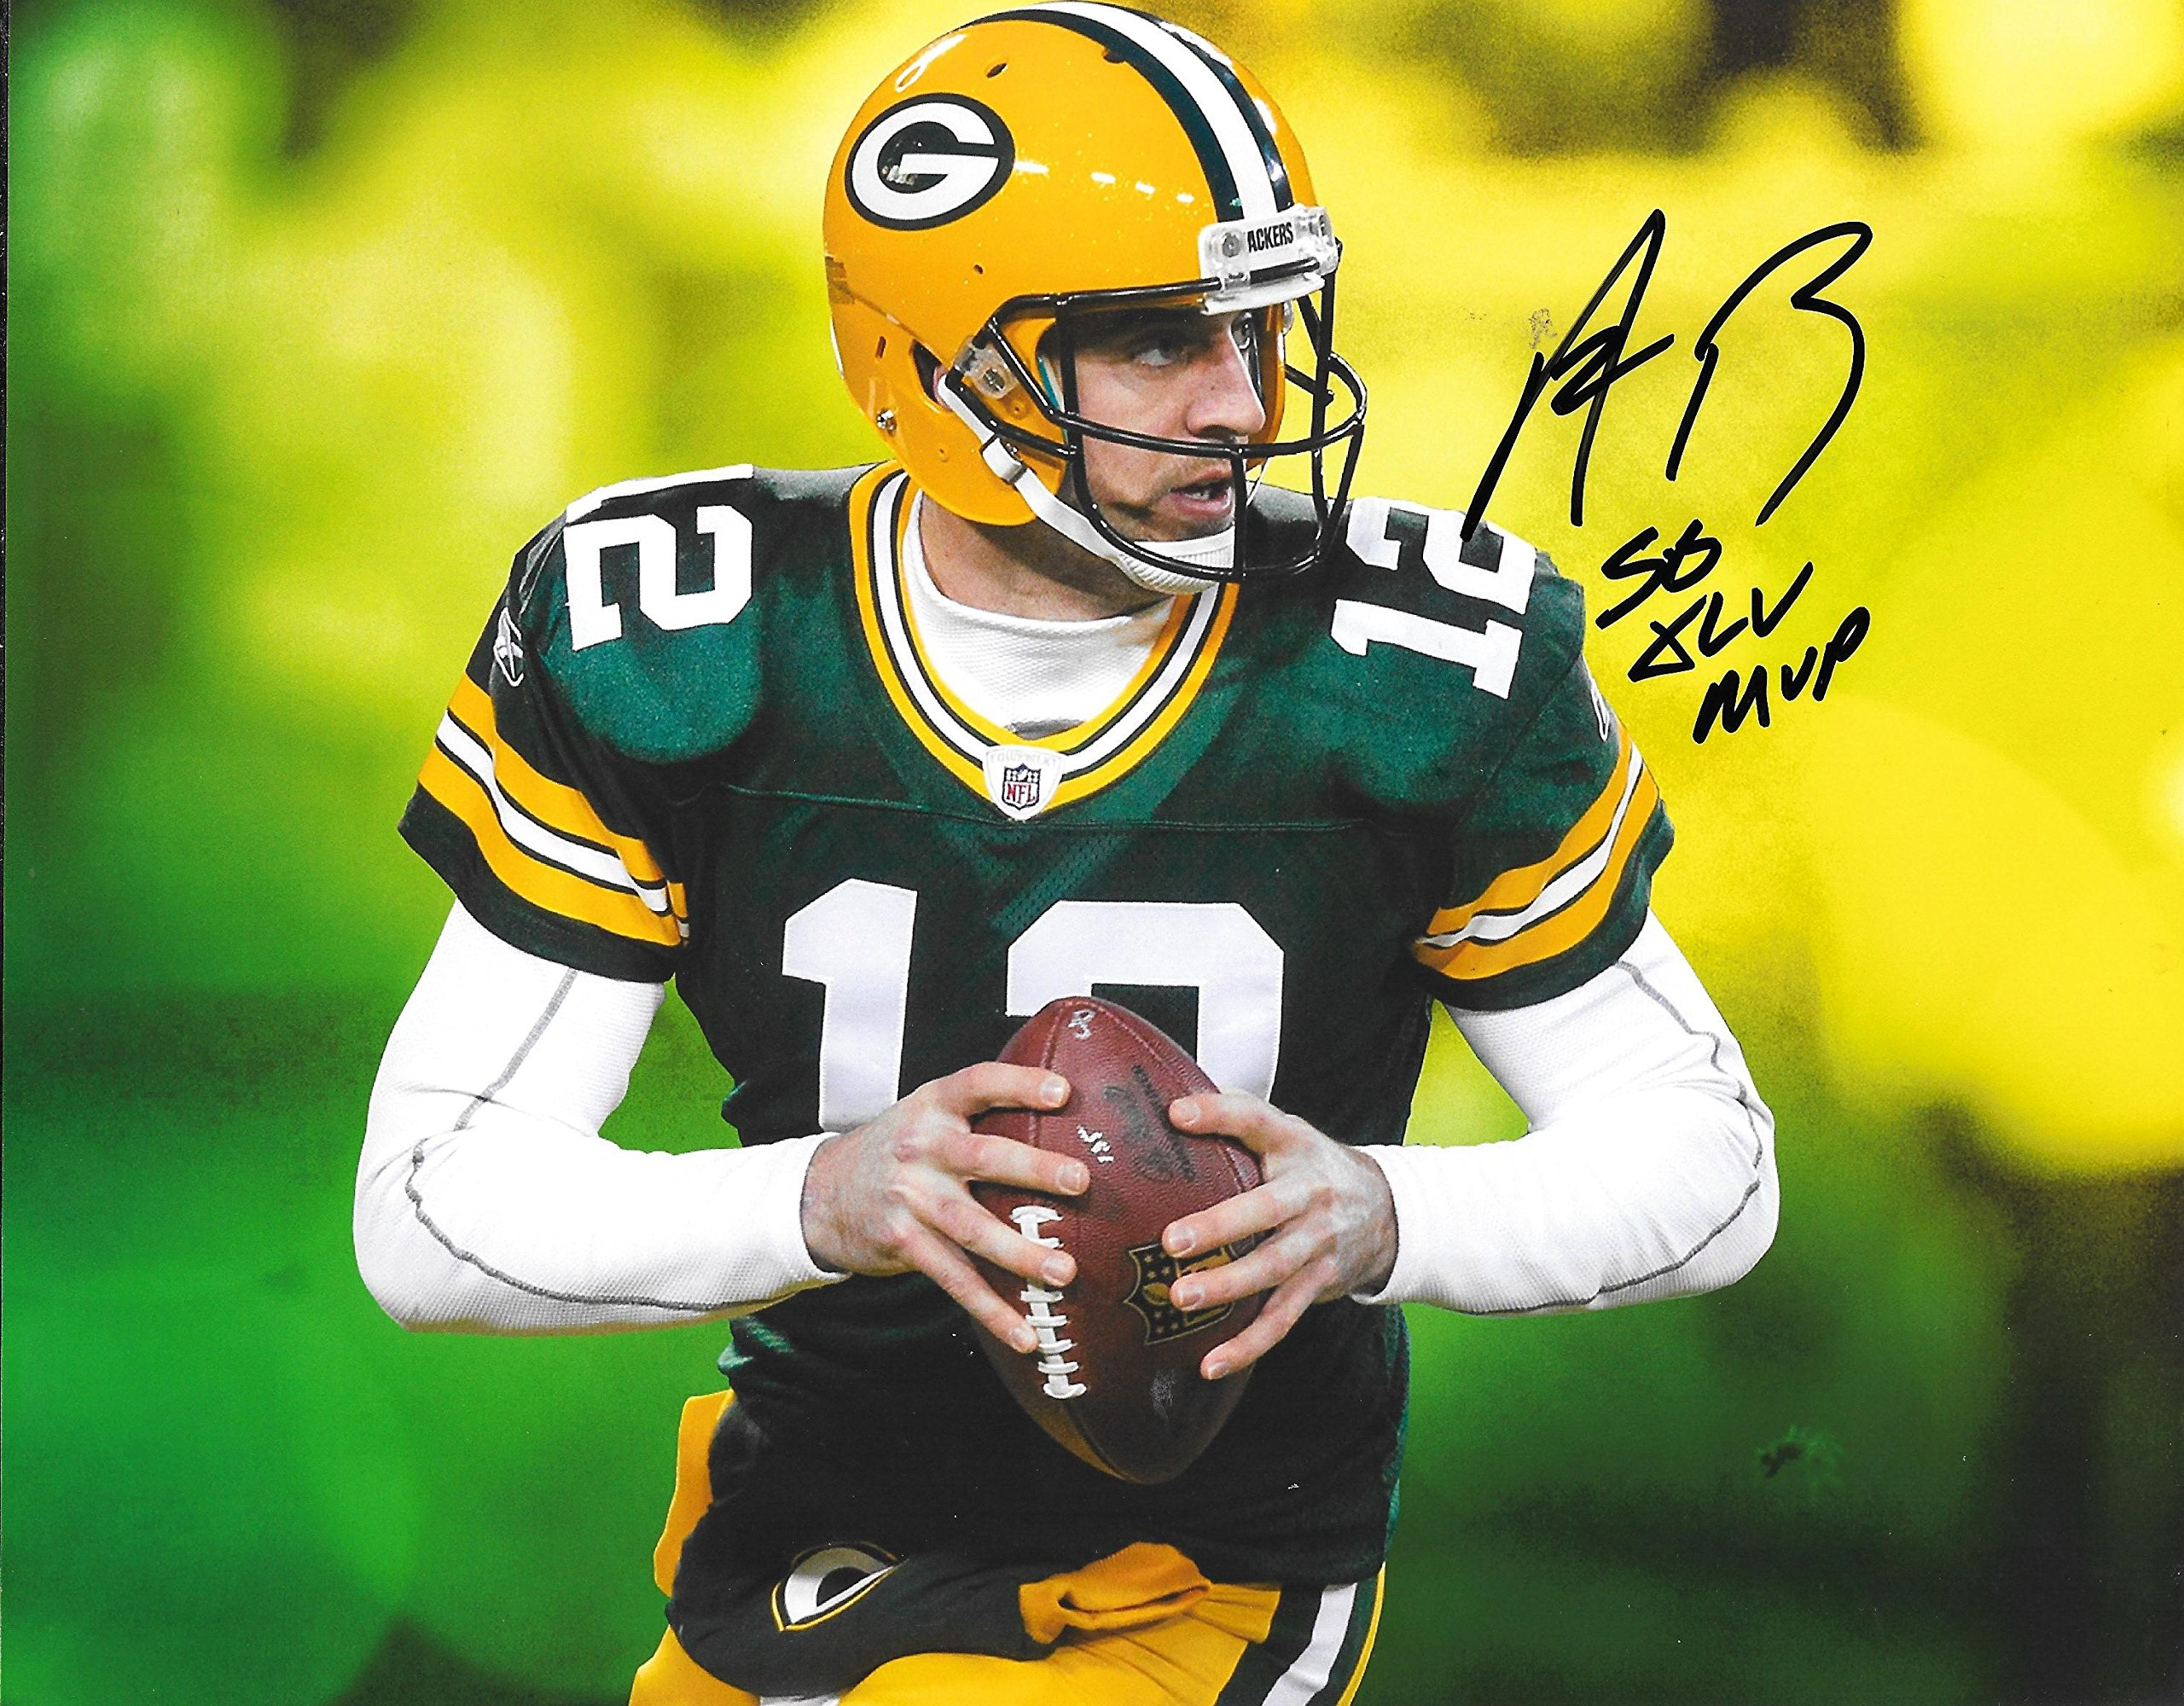 Aaron Rodgers Green Bay Packers Autographed Signed 8 x 10 Photo COA NM/MT MT Condition!